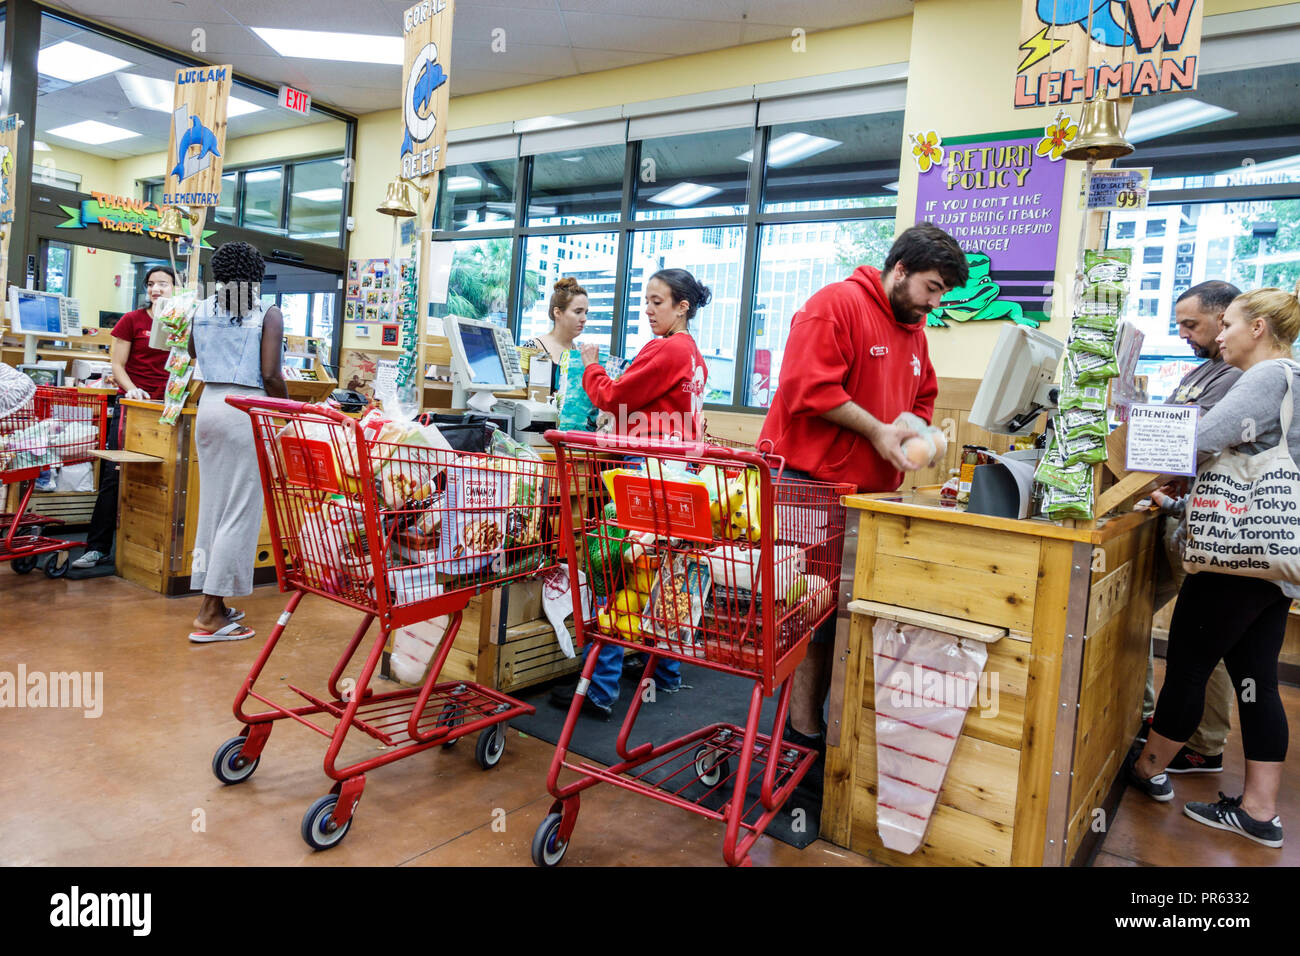 Miami Florida Trader Joe's supermarket grocery store food inside shopping checkout line queue cashier man woman cart trolley - Stock Image